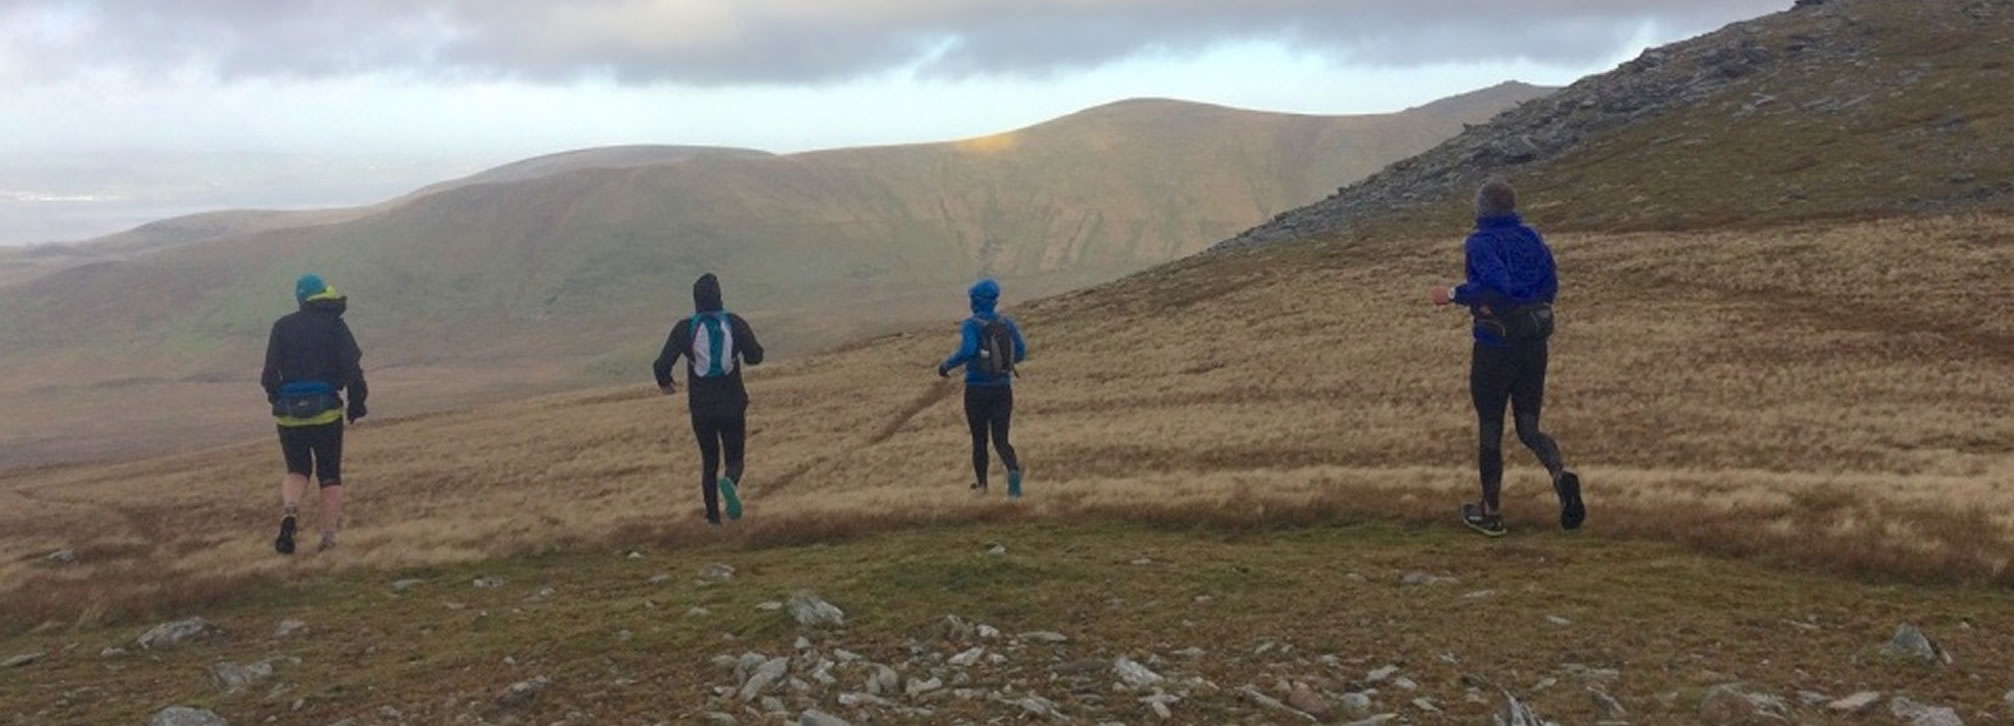 RAW Adventures - Guided Mountain and Trail Running